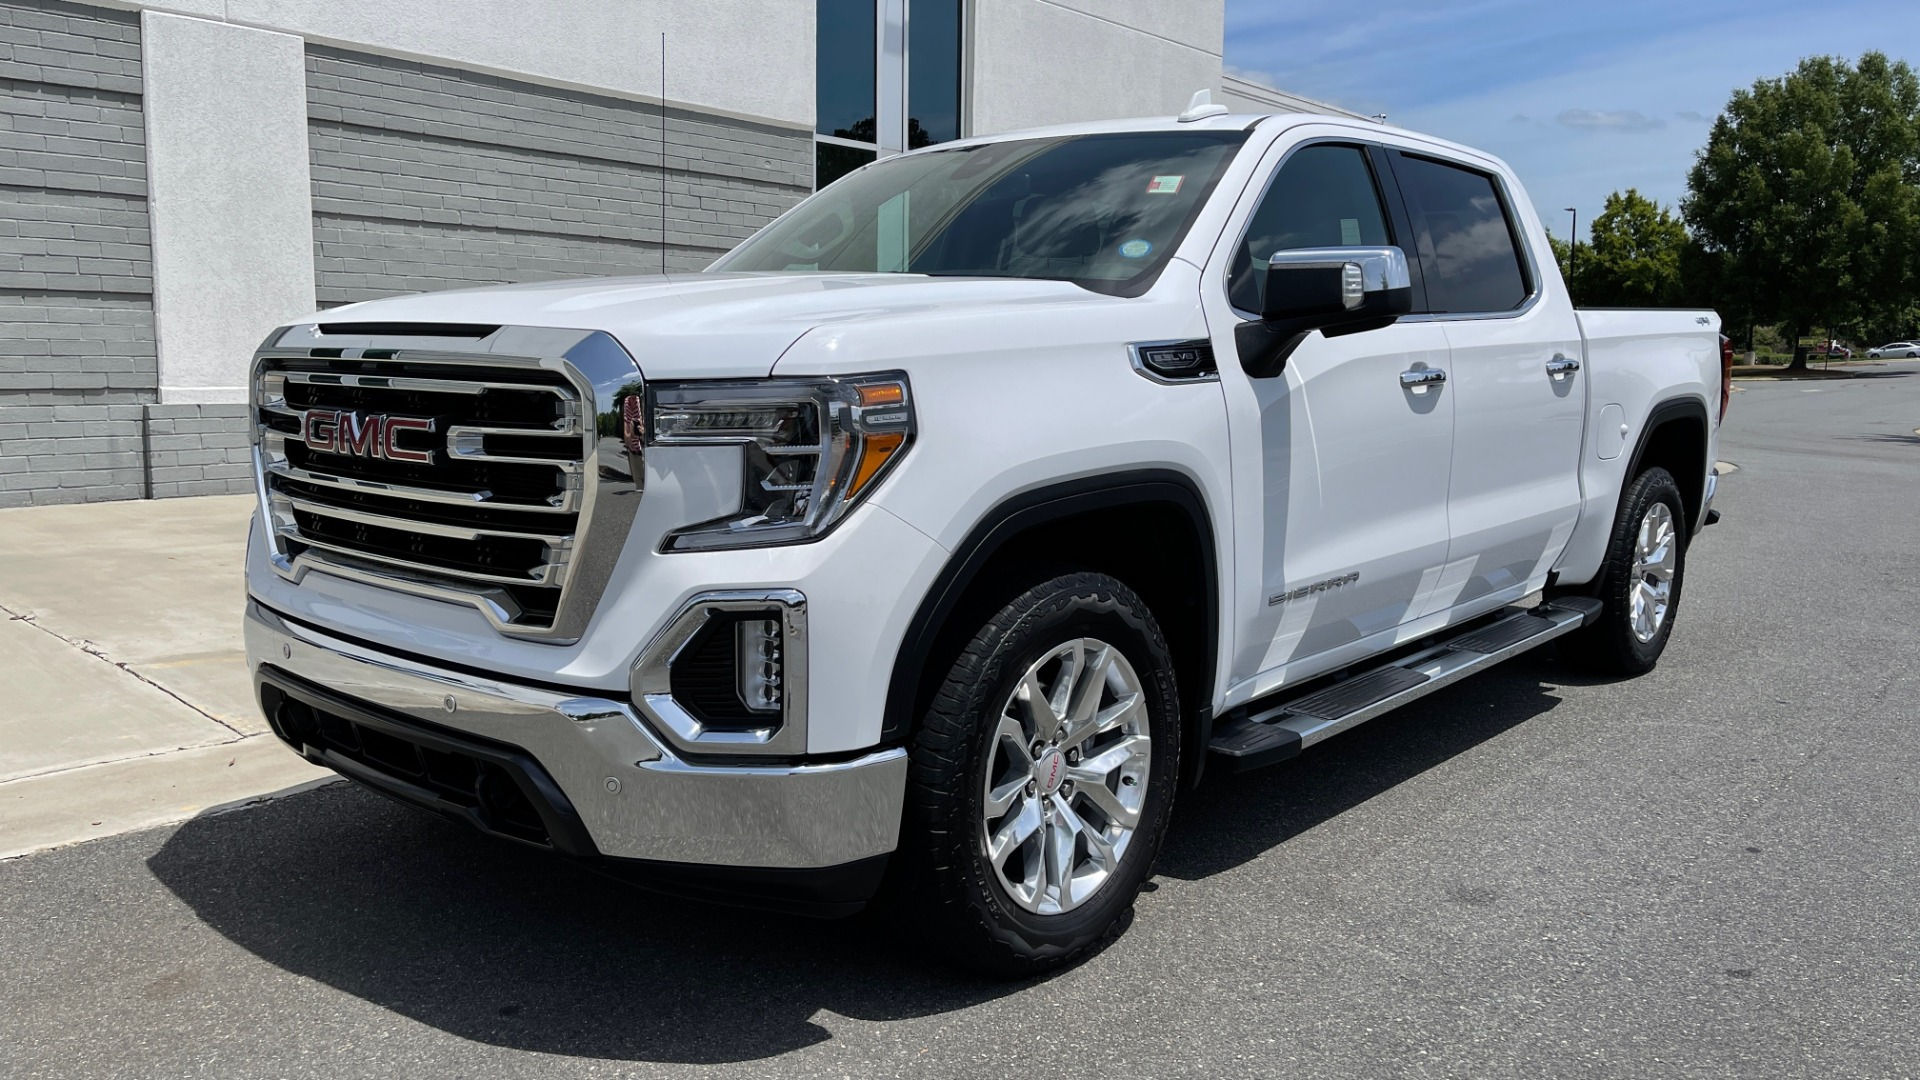 Used 2019 GMC SIERRA 1500 SLT 4X4 CREWCAB / 5.3L V8 / 8-SPD AUTO / NAV / BOSE / REARVIEW for sale $49,999 at Formula Imports in Charlotte NC 28227 3